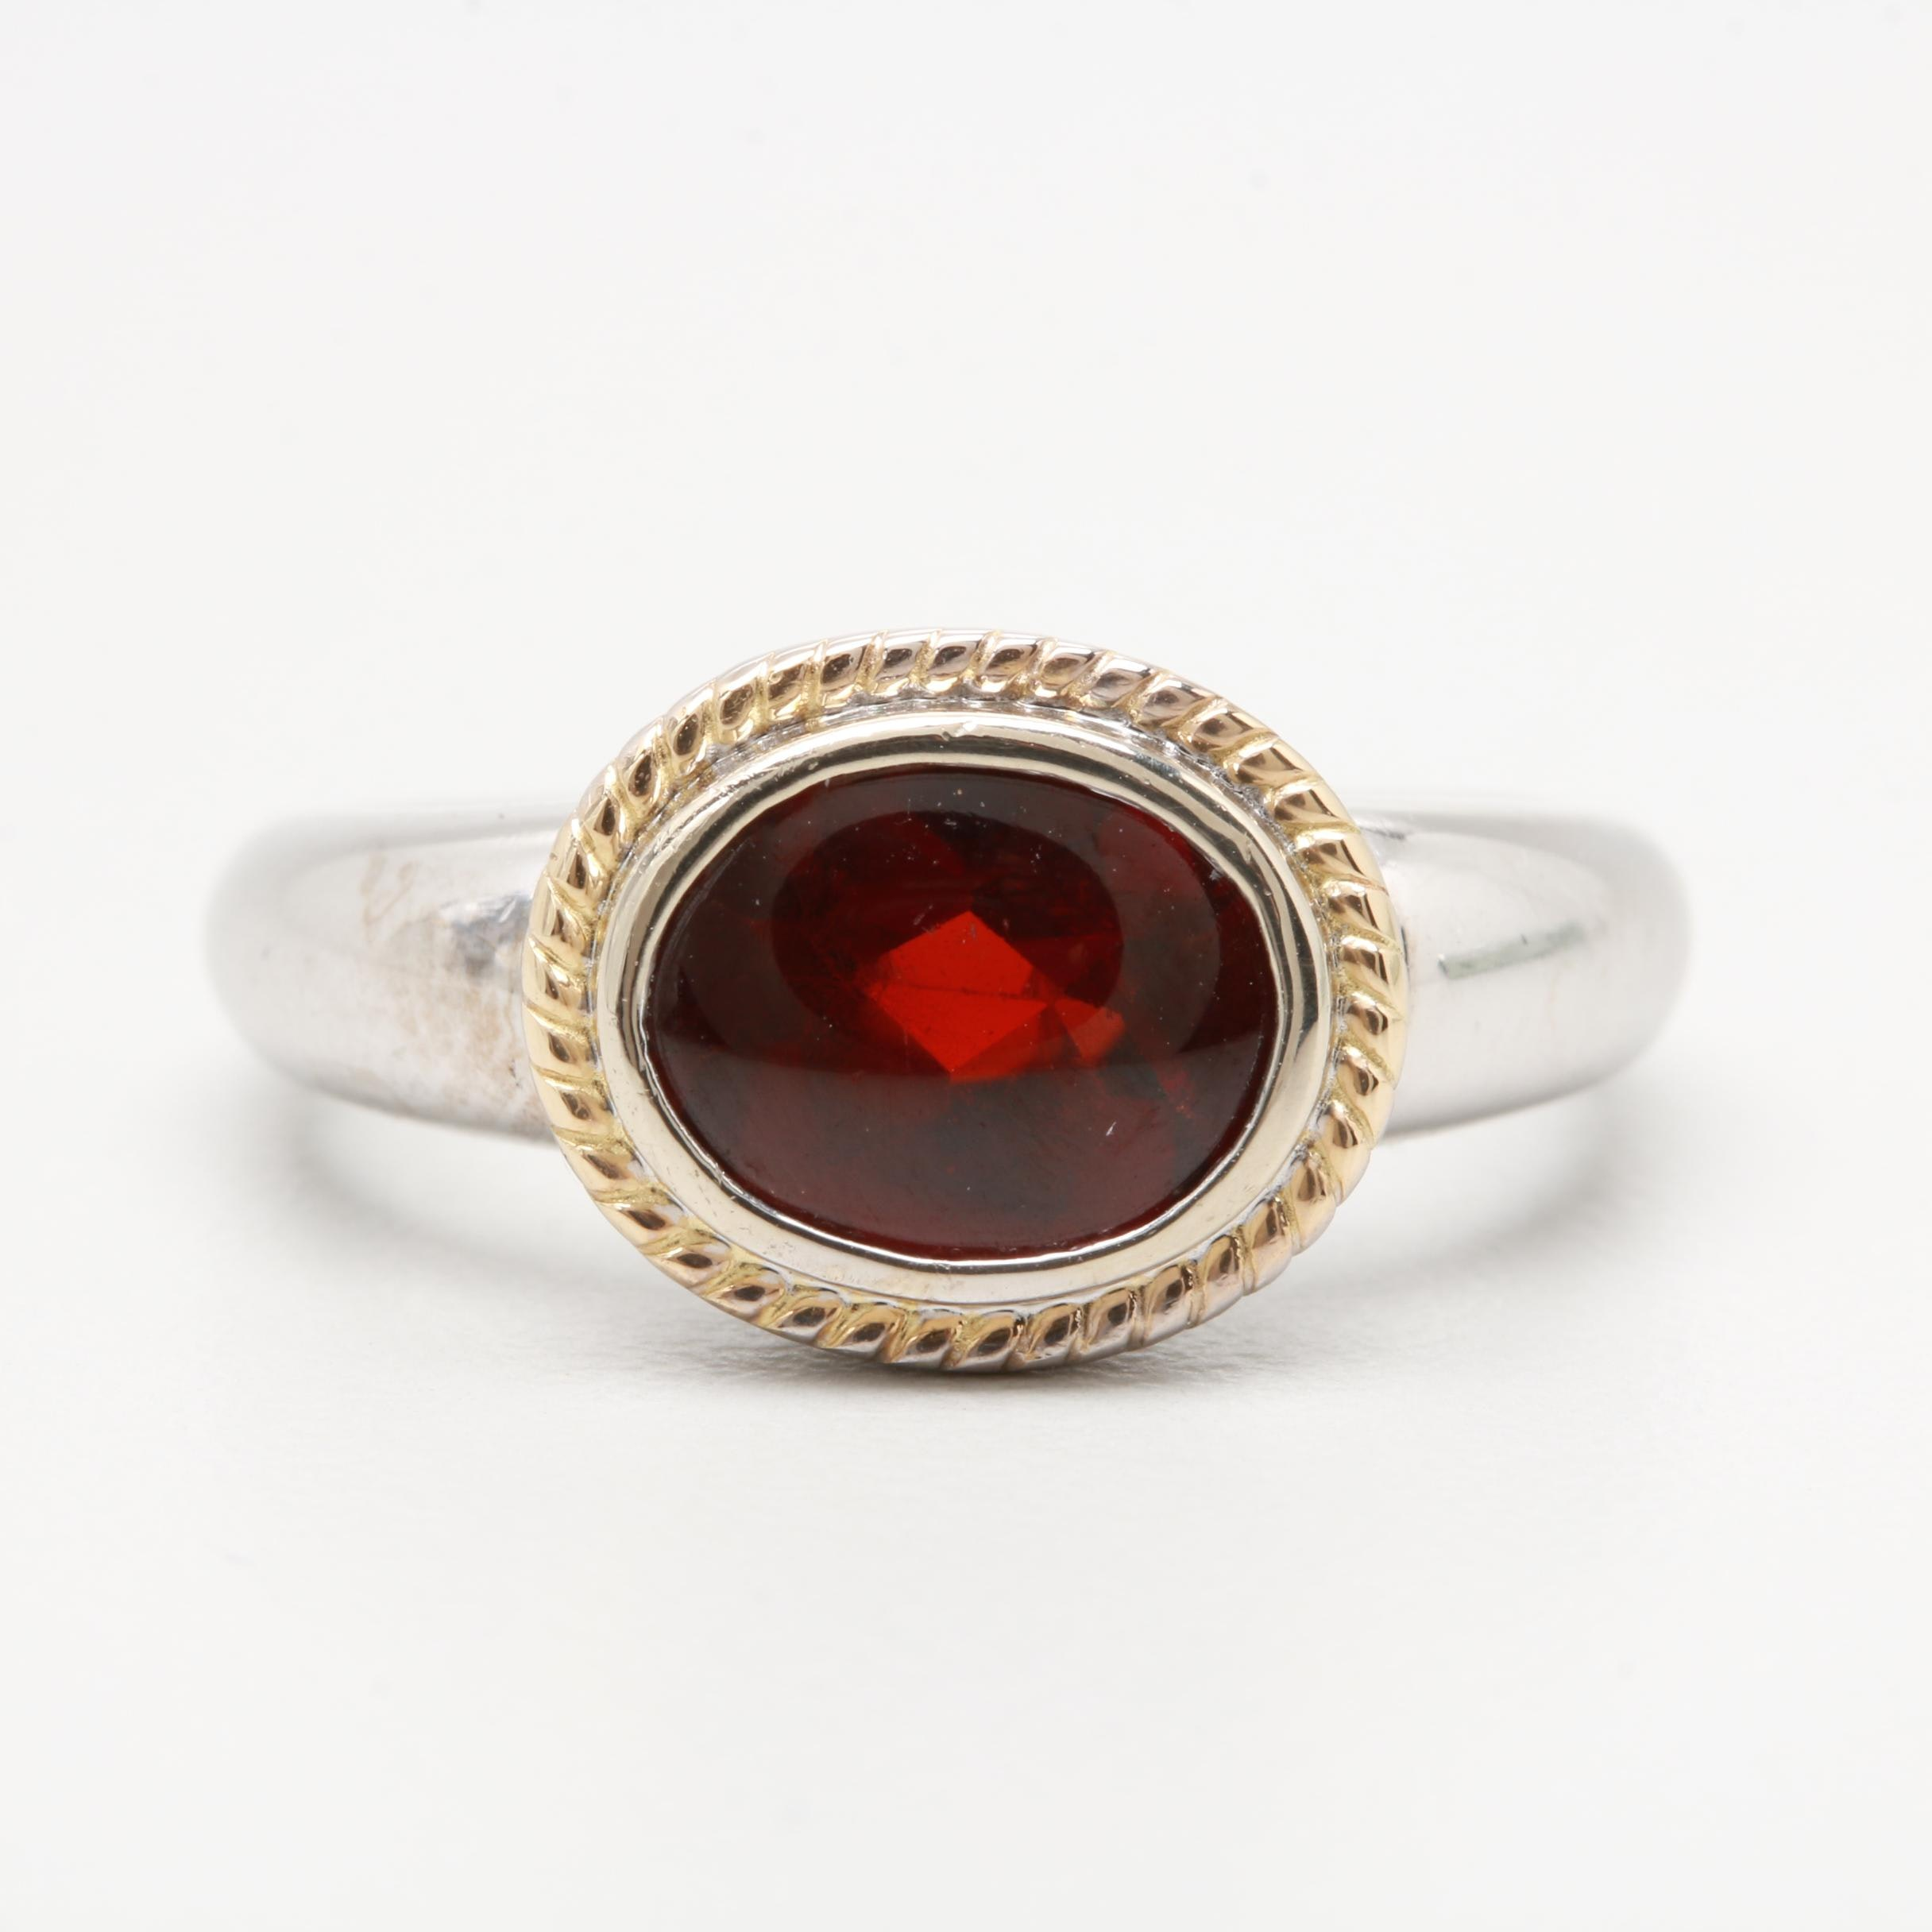 14K White Gold Garnet Ring with 14K Yellow Gold Accents